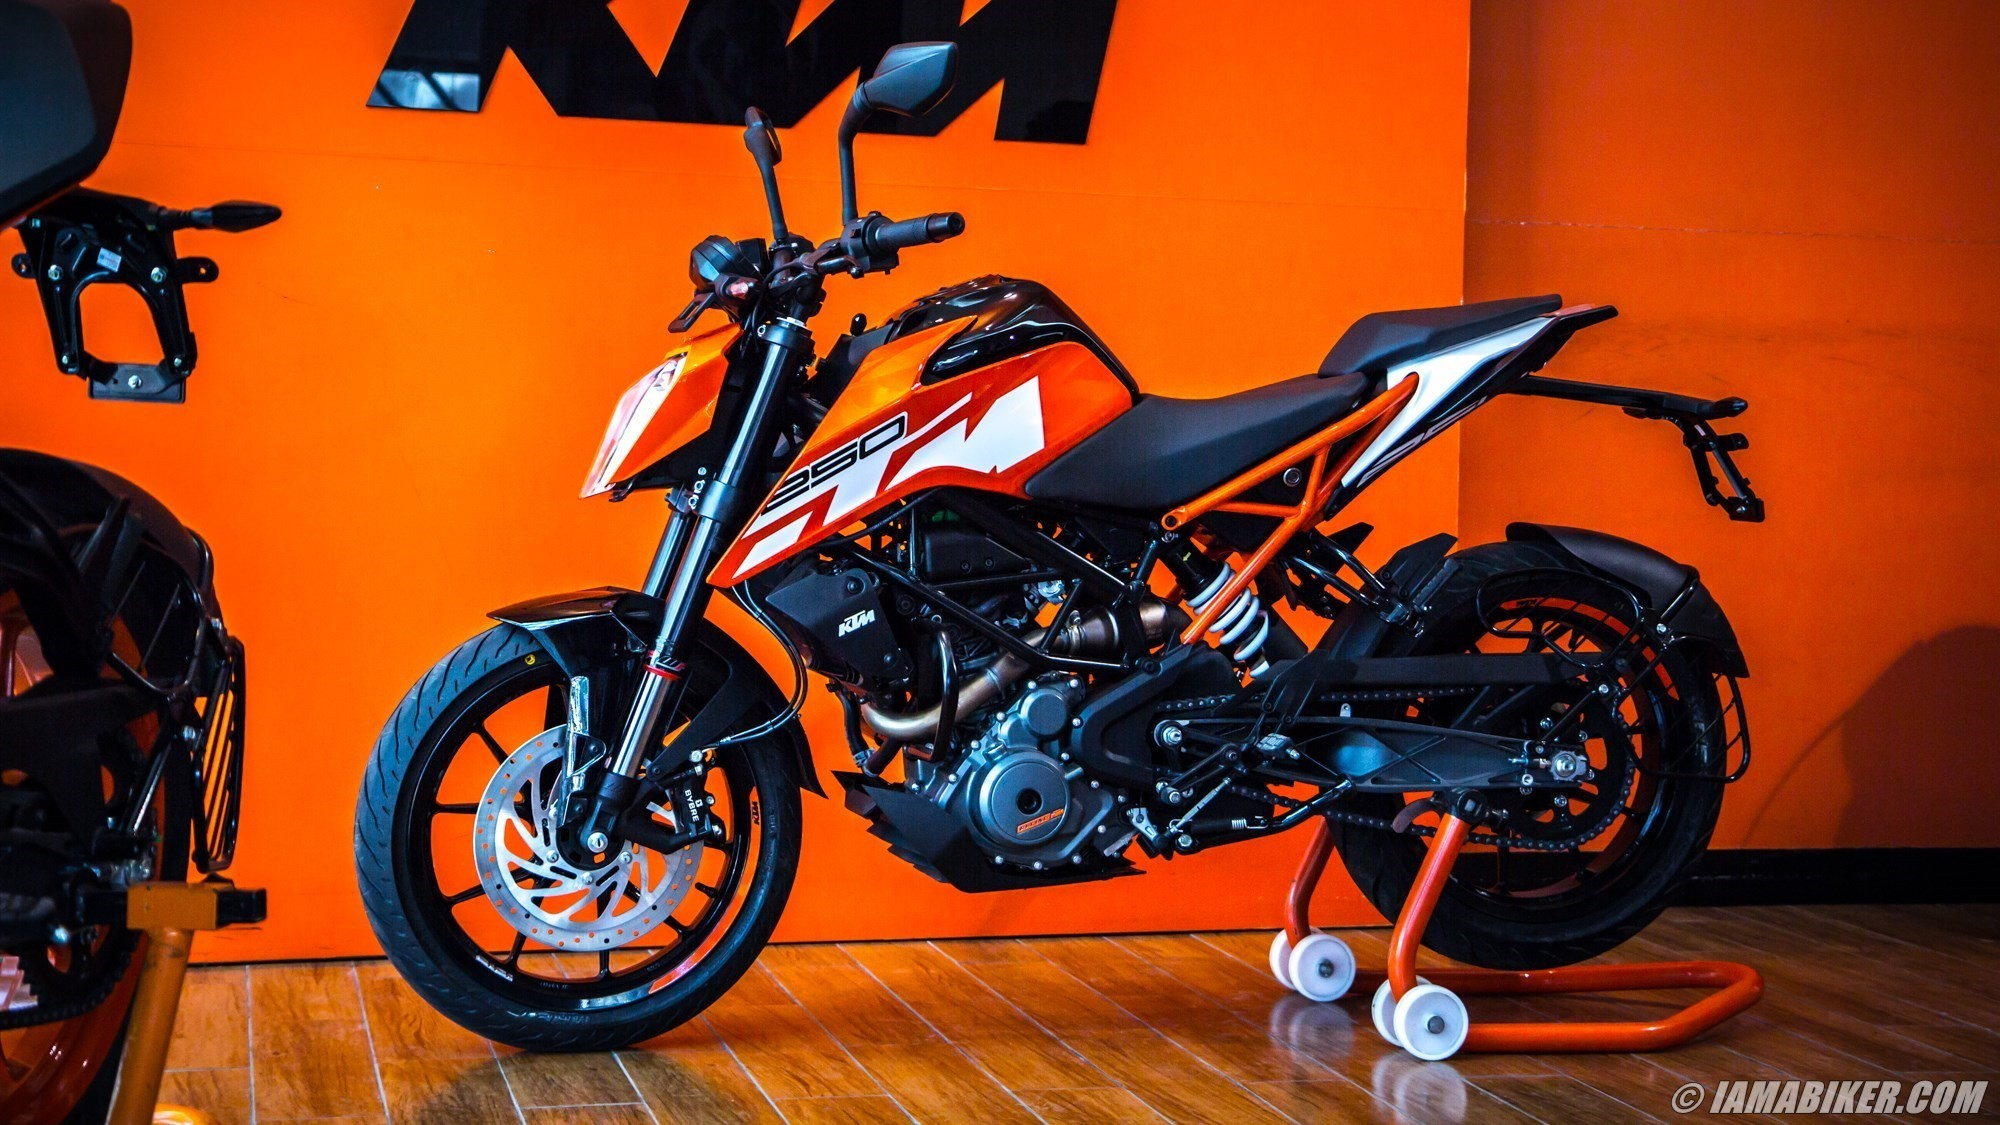 Rcb Hd Wallpapers Free Download Ktm Duke Bike Hd Wallpapers 85 Images